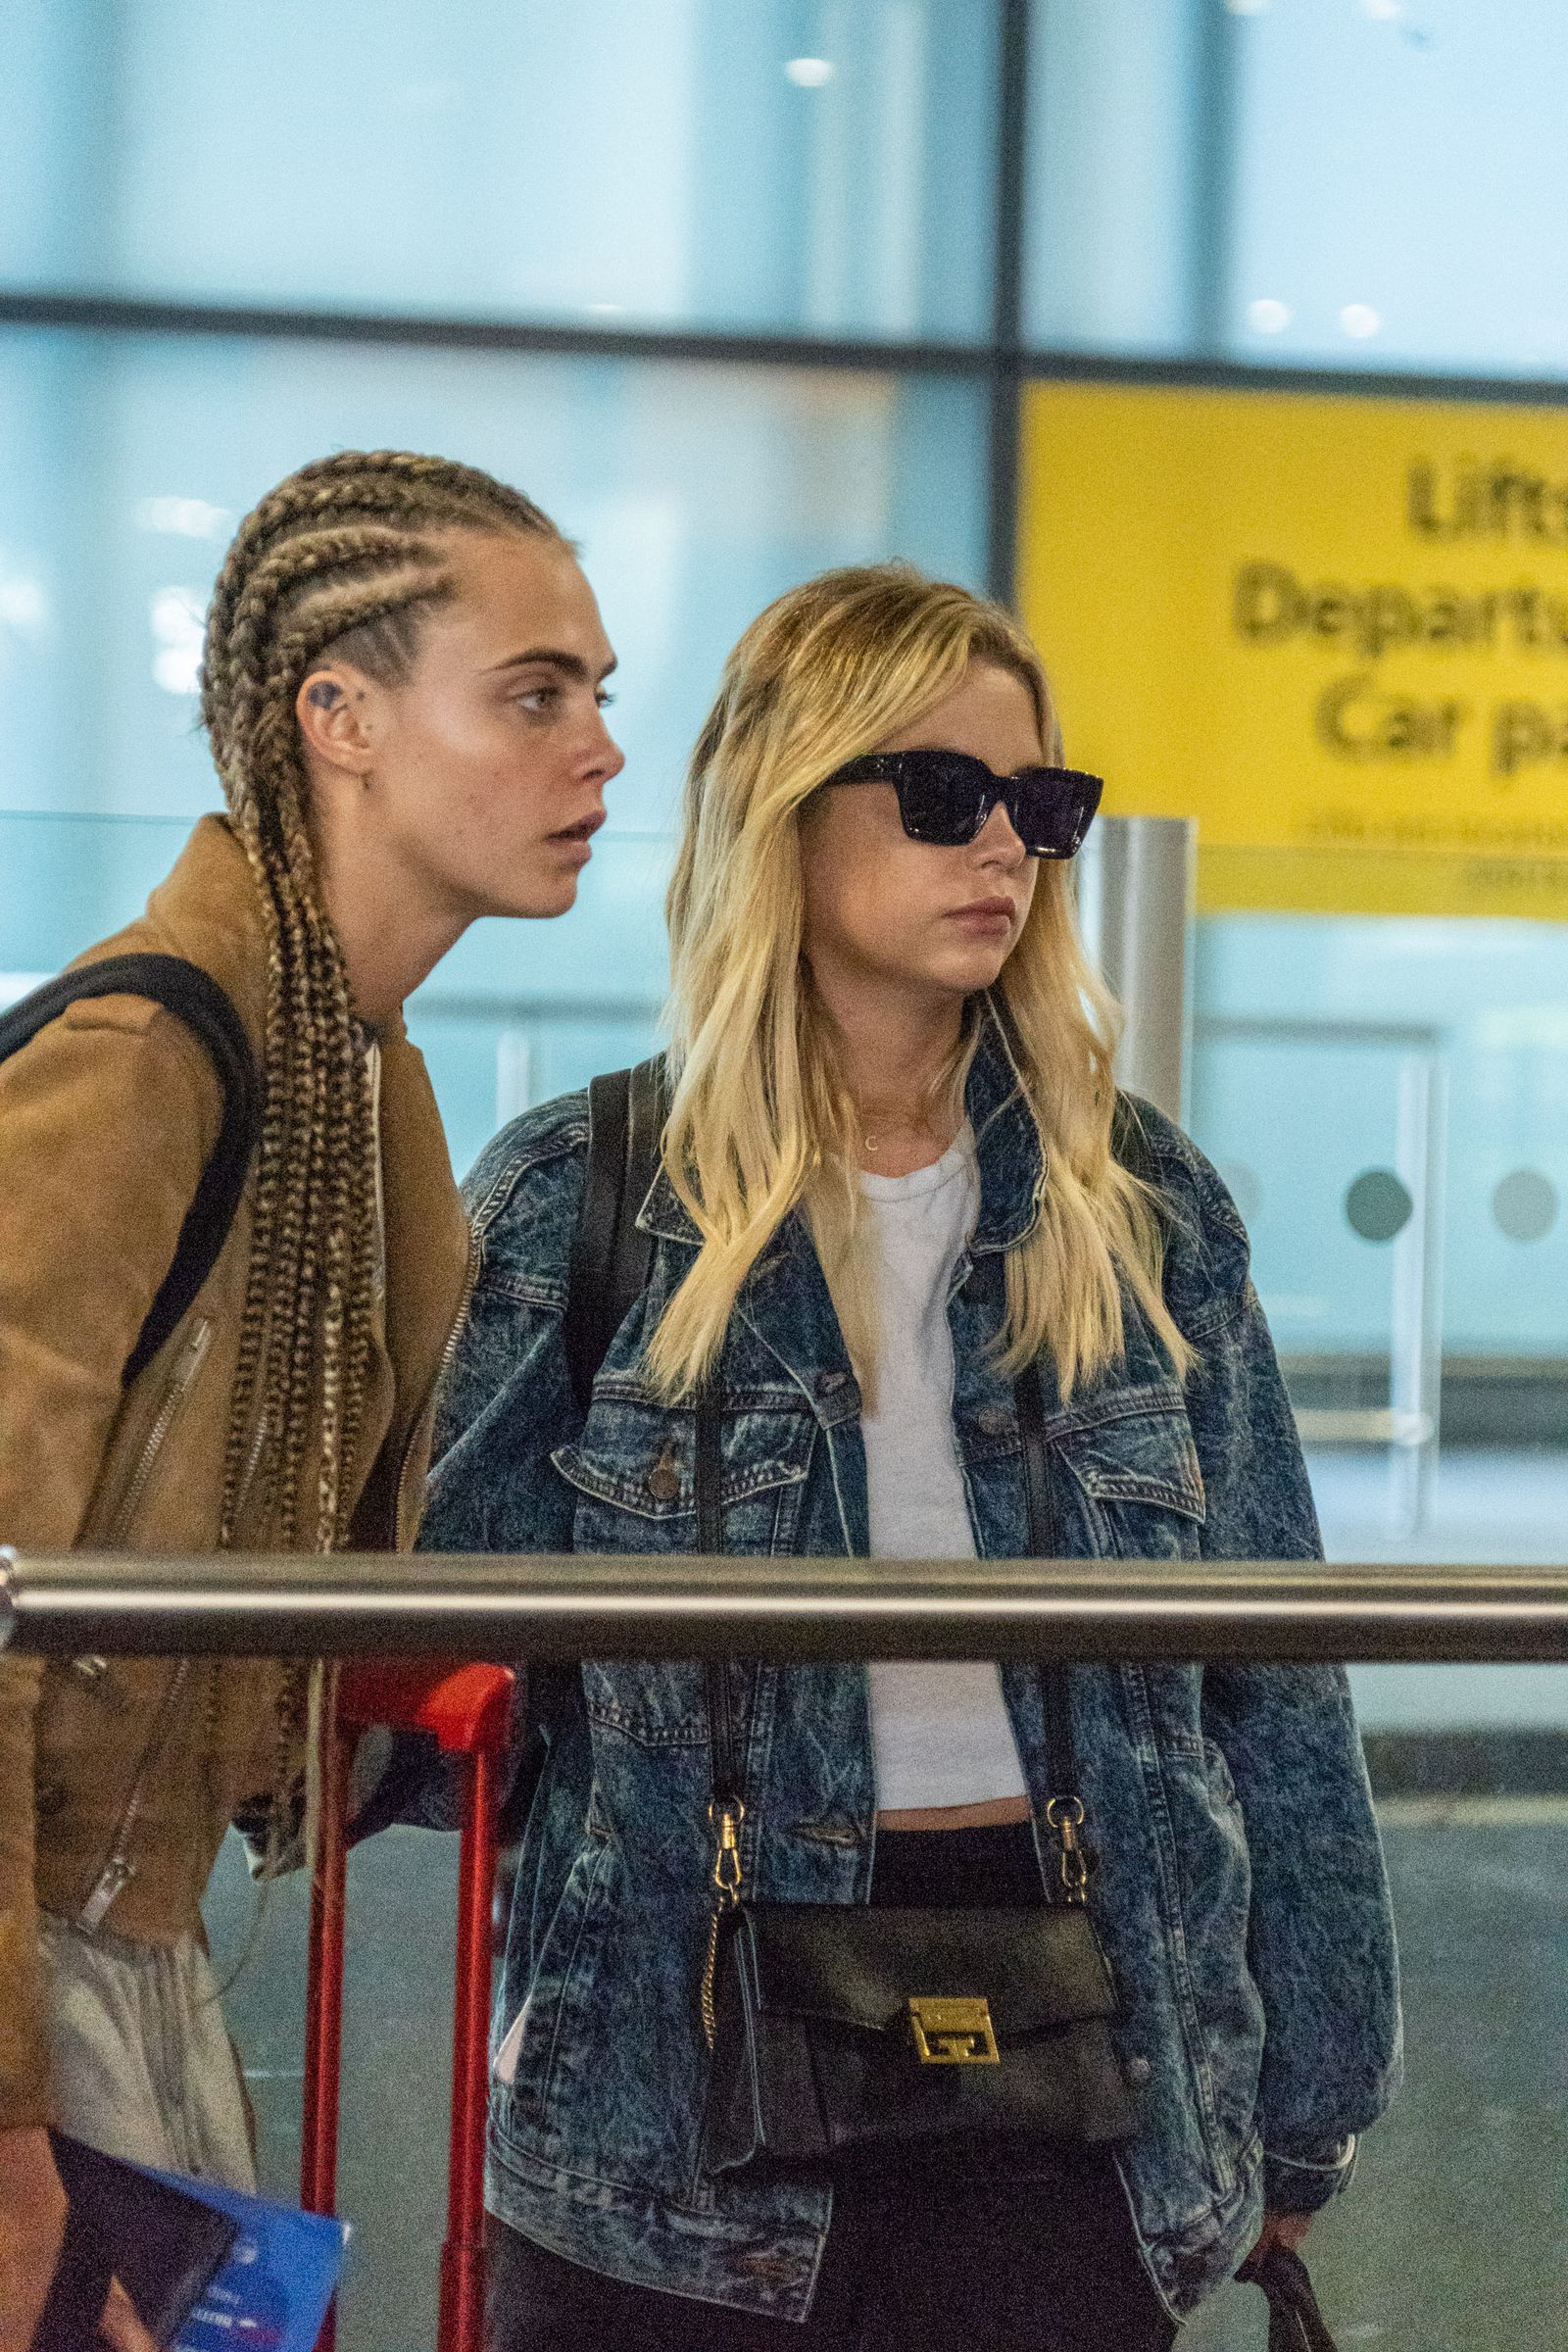 Cara Delevingne Ashley Benson Were Just Seen Kissing At An Airport